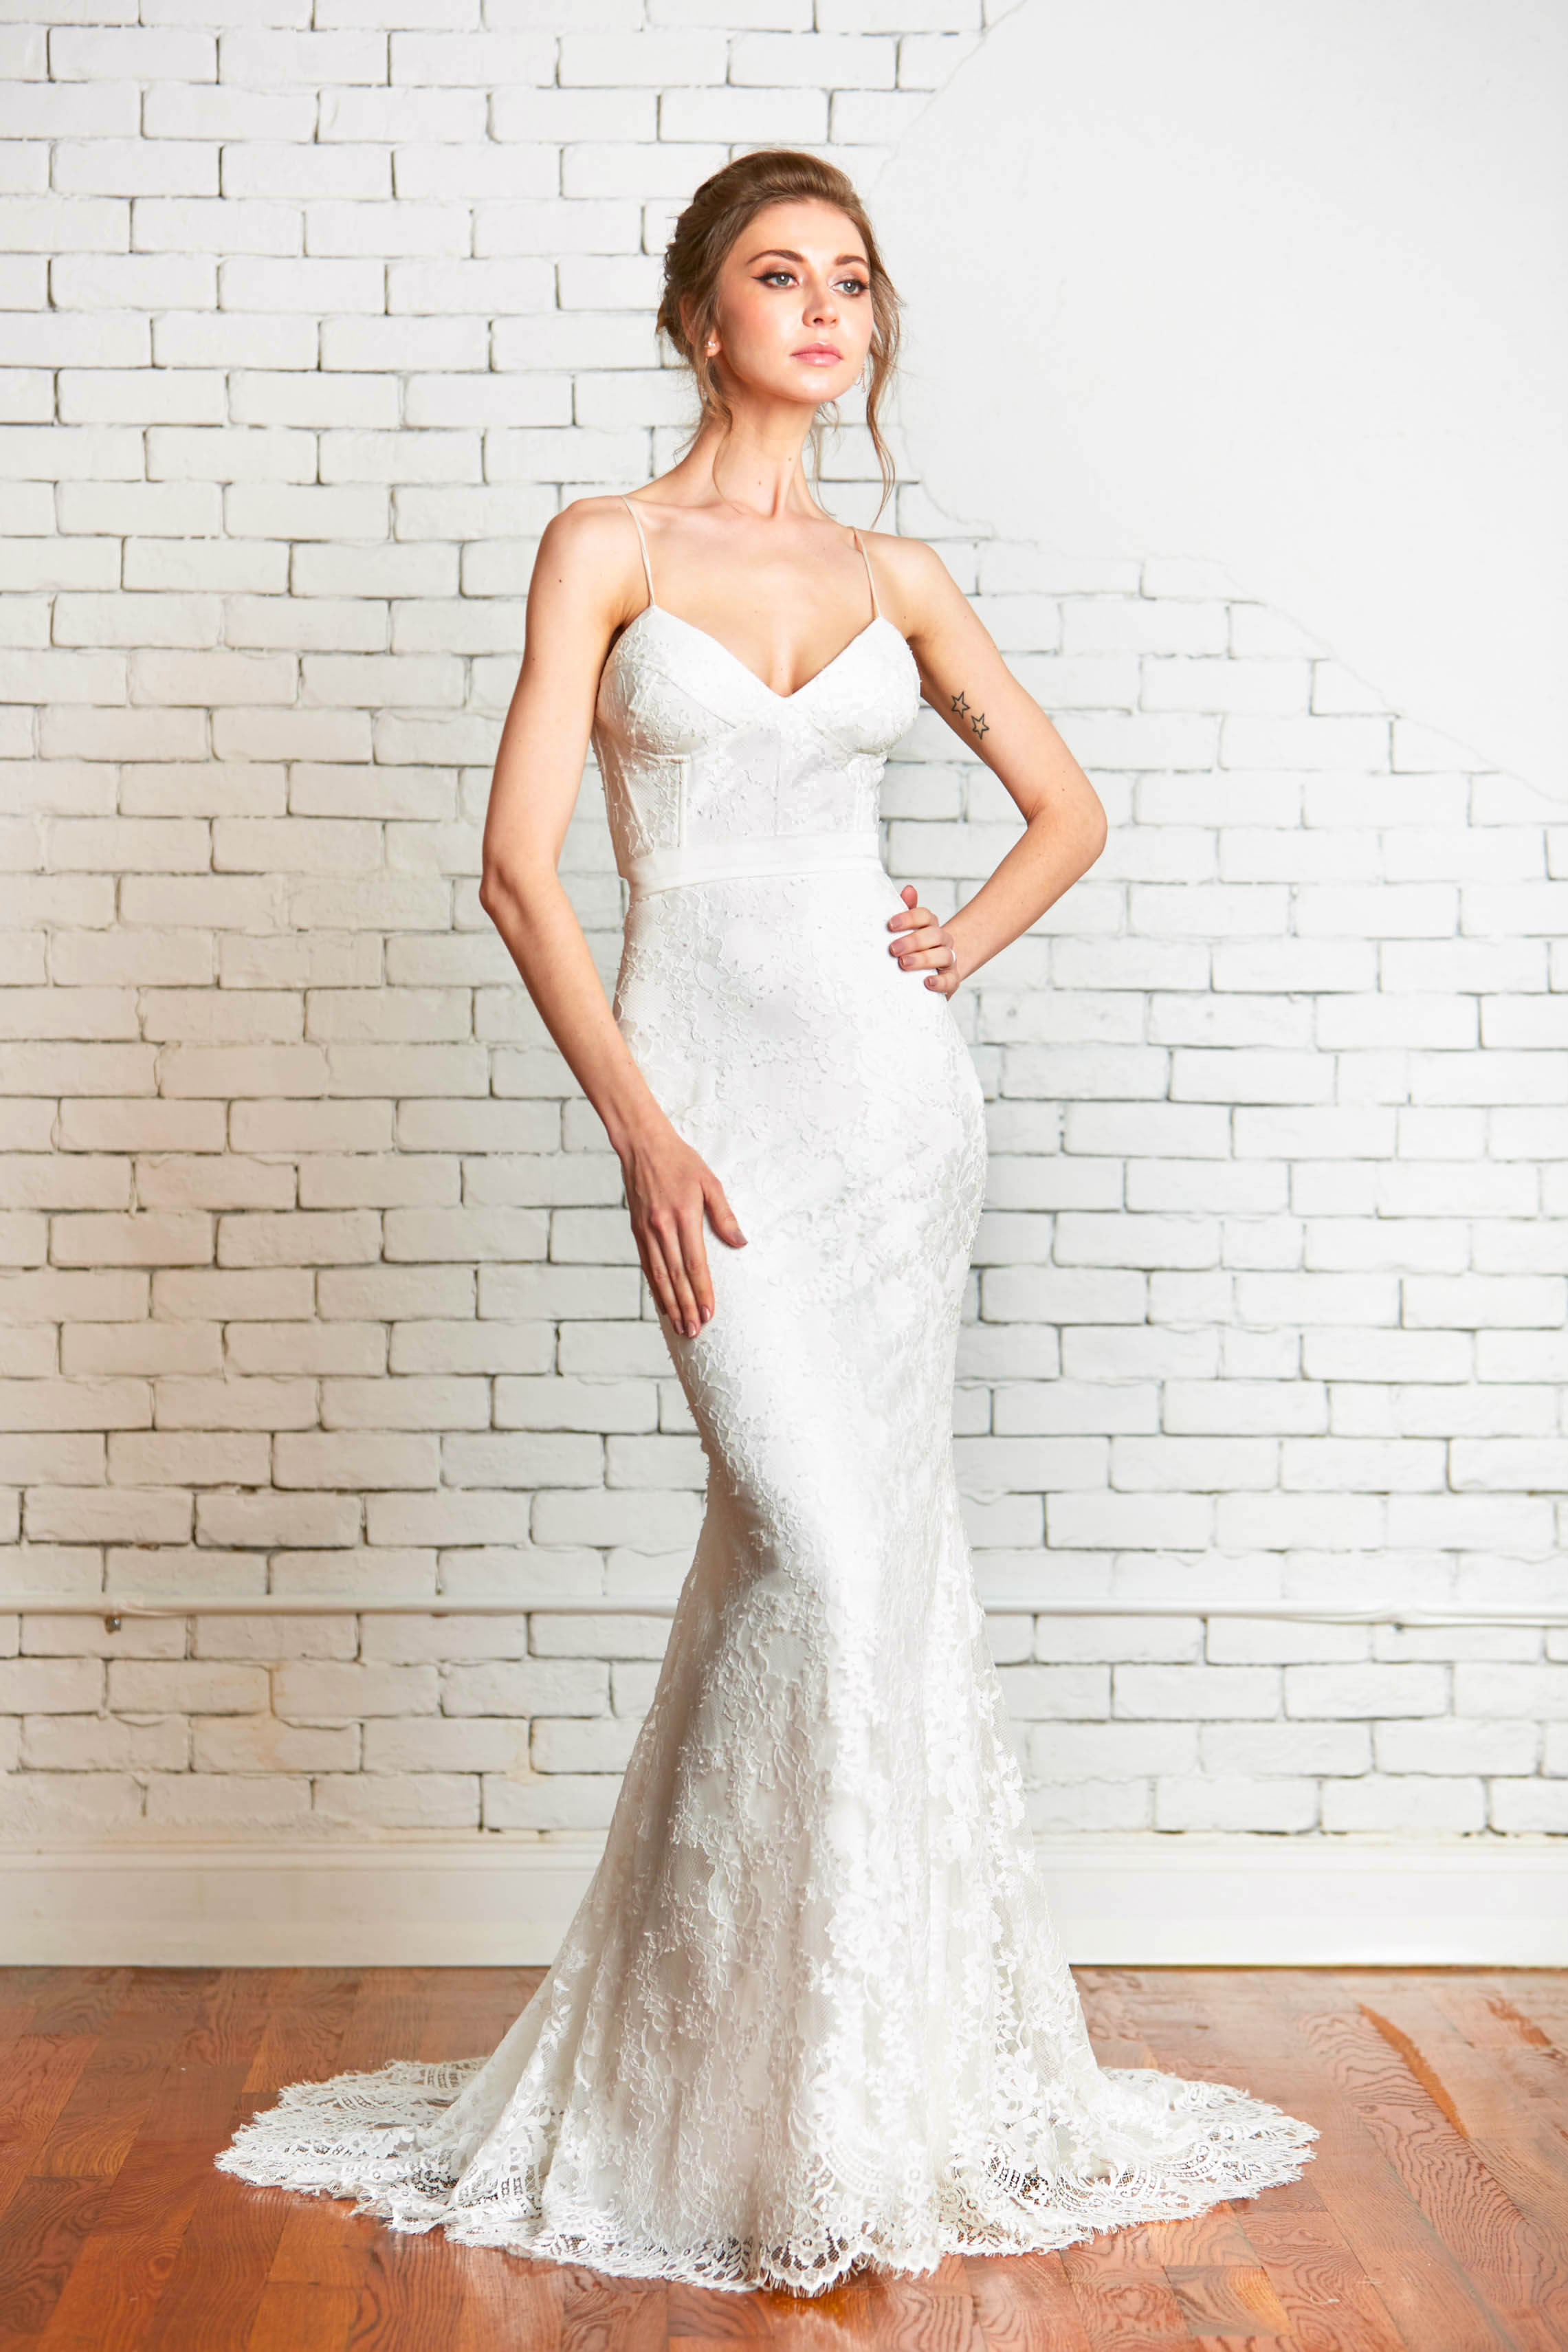 Lucia-Hope Gown